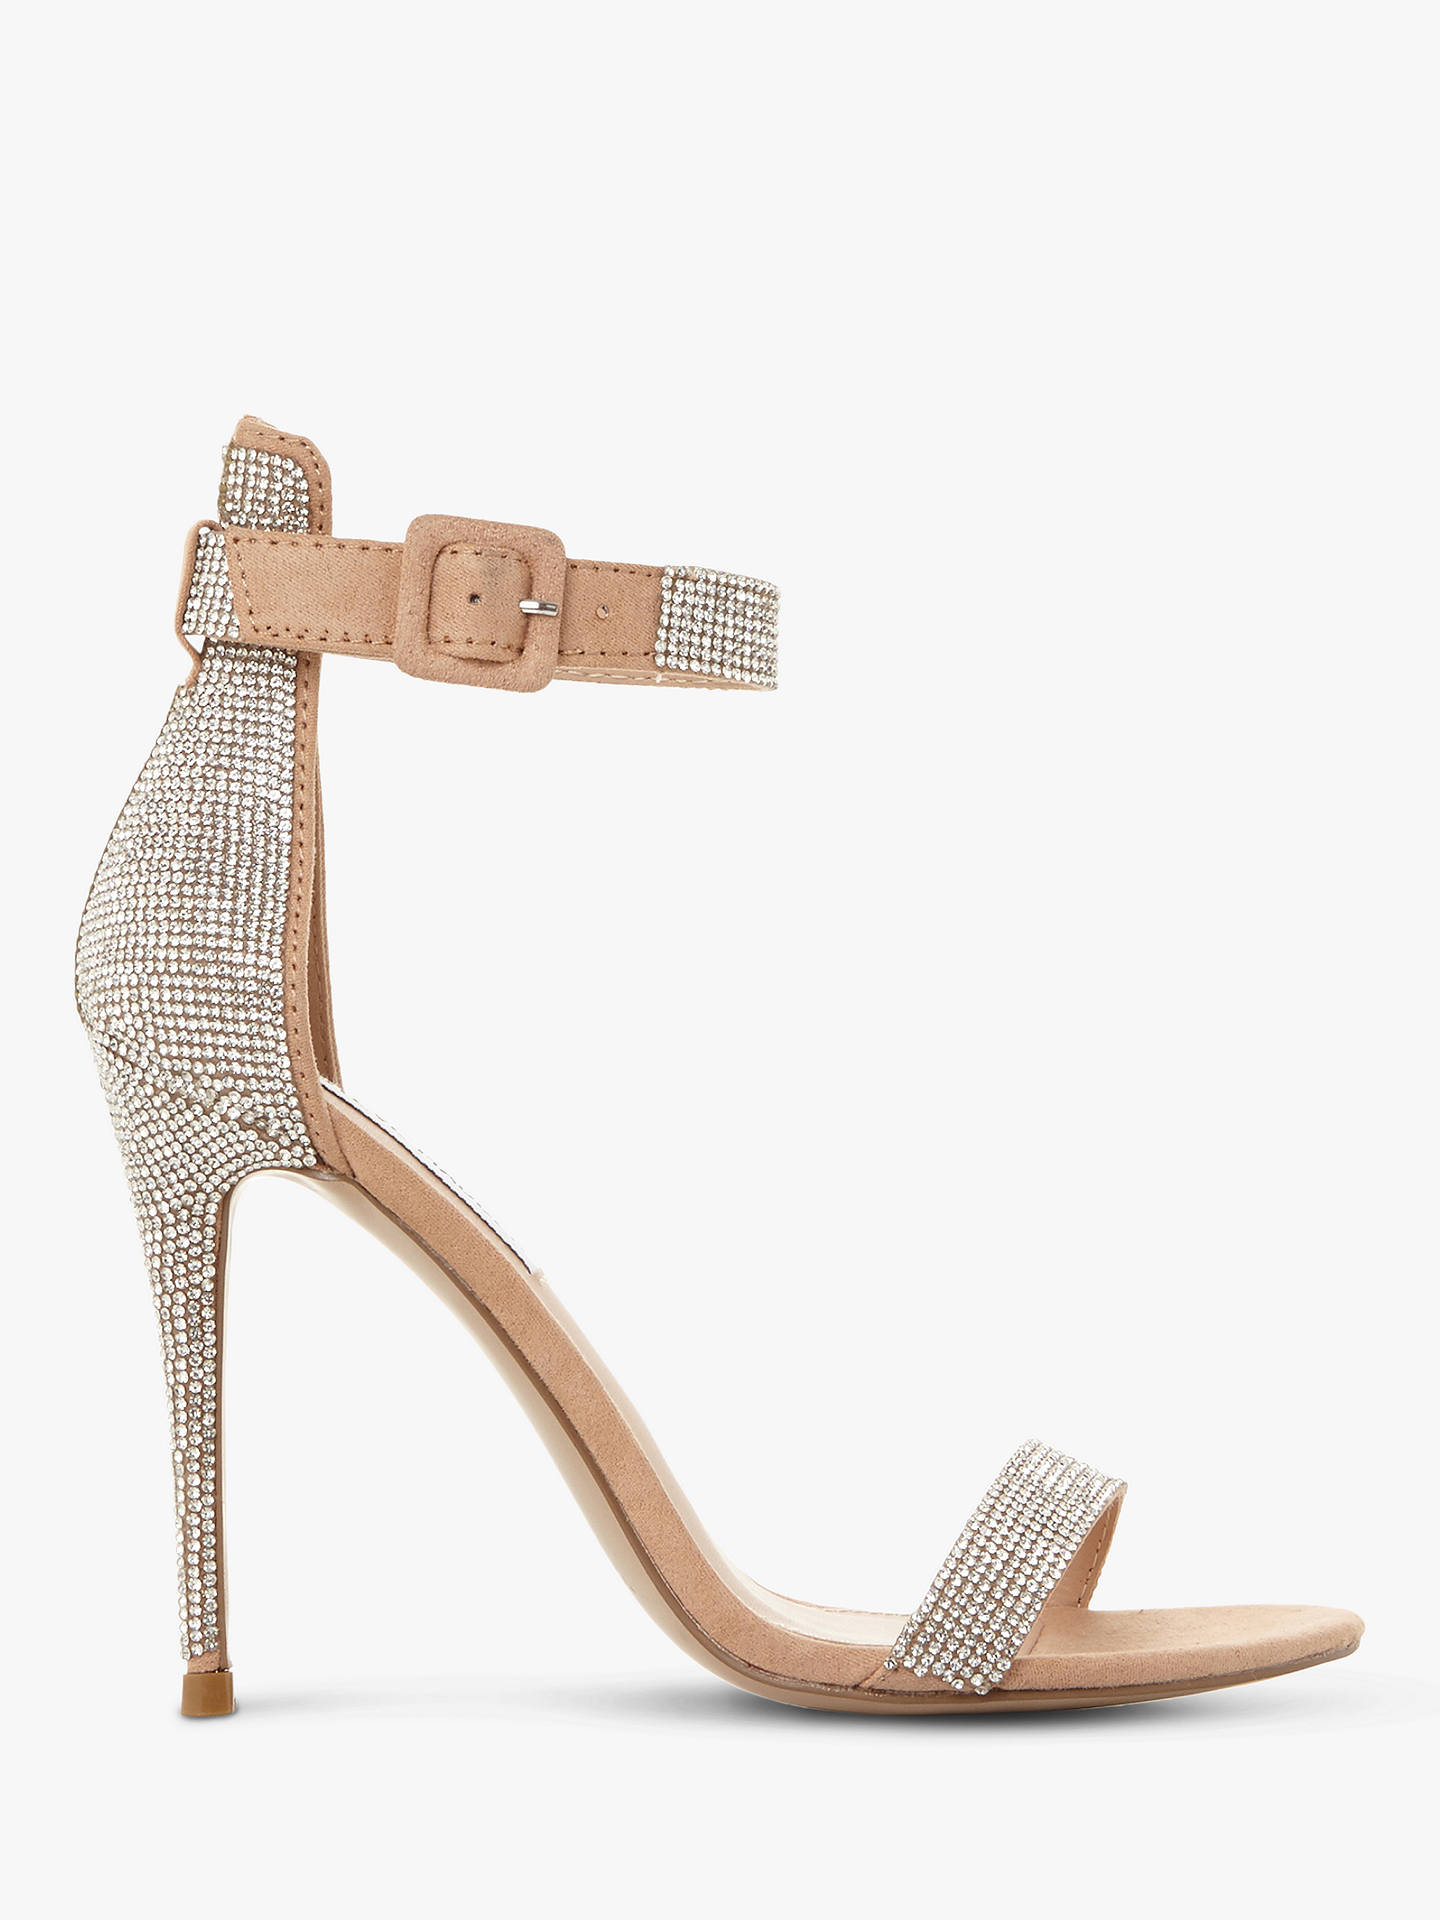 3c4a8fd2997 Buy Steve Madden Mischa Embellished Ankle Strap Heeled Sandals